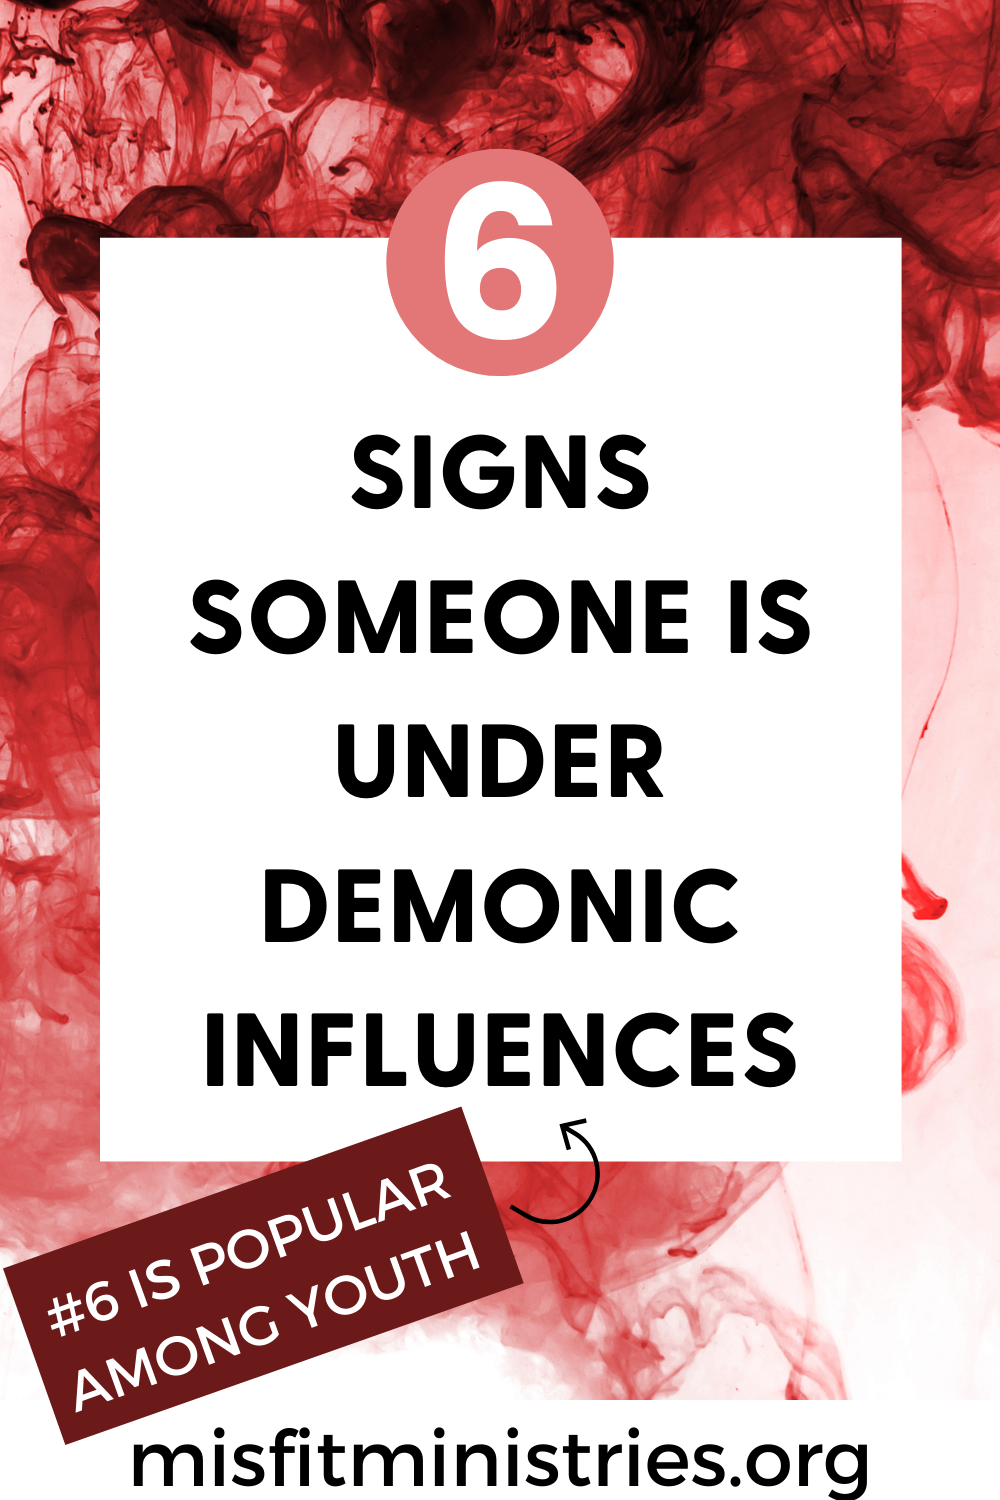 SIGNS SOMEONE IS UNDER DEMONIC INFLUENCES